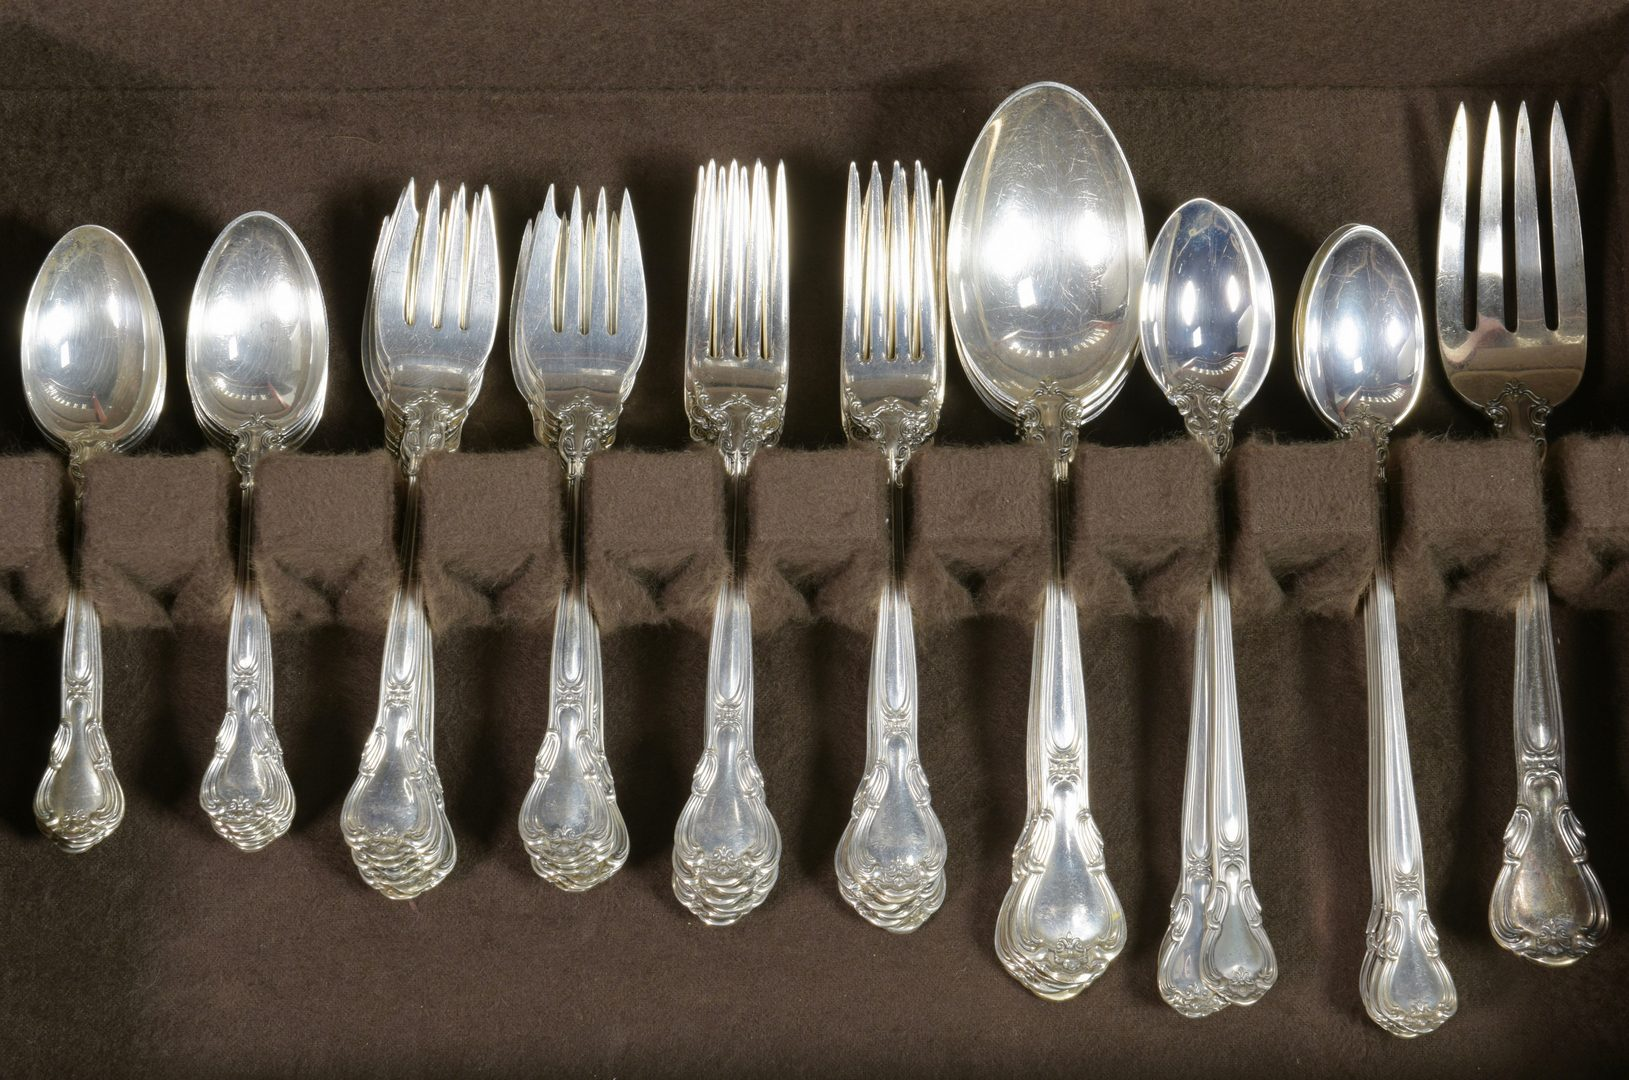 Lot 459: Gorham Chantilly Sterling Flatware, 90 pcs